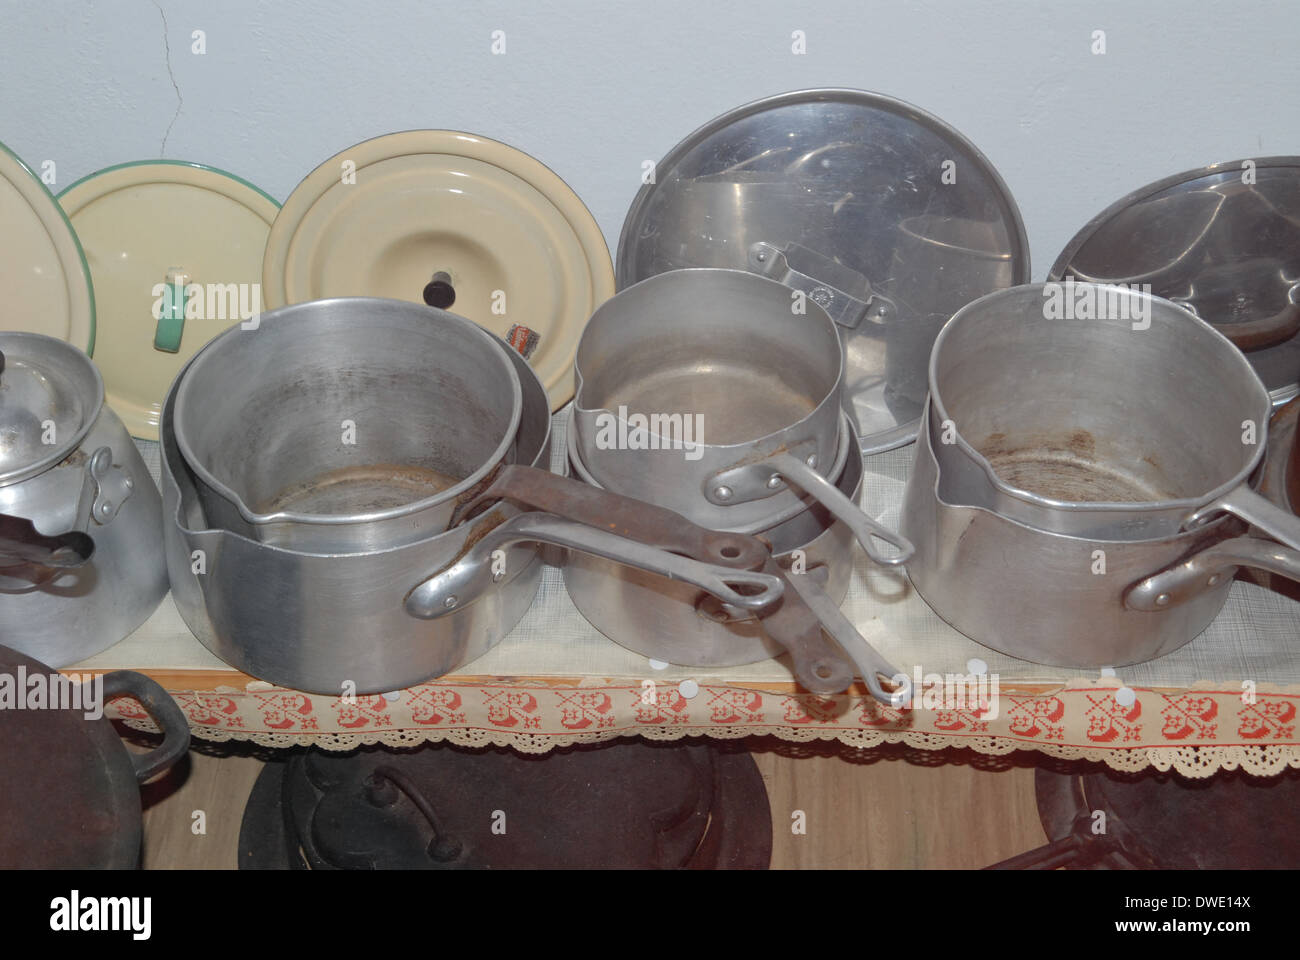 Pots and pans. - Stock Image